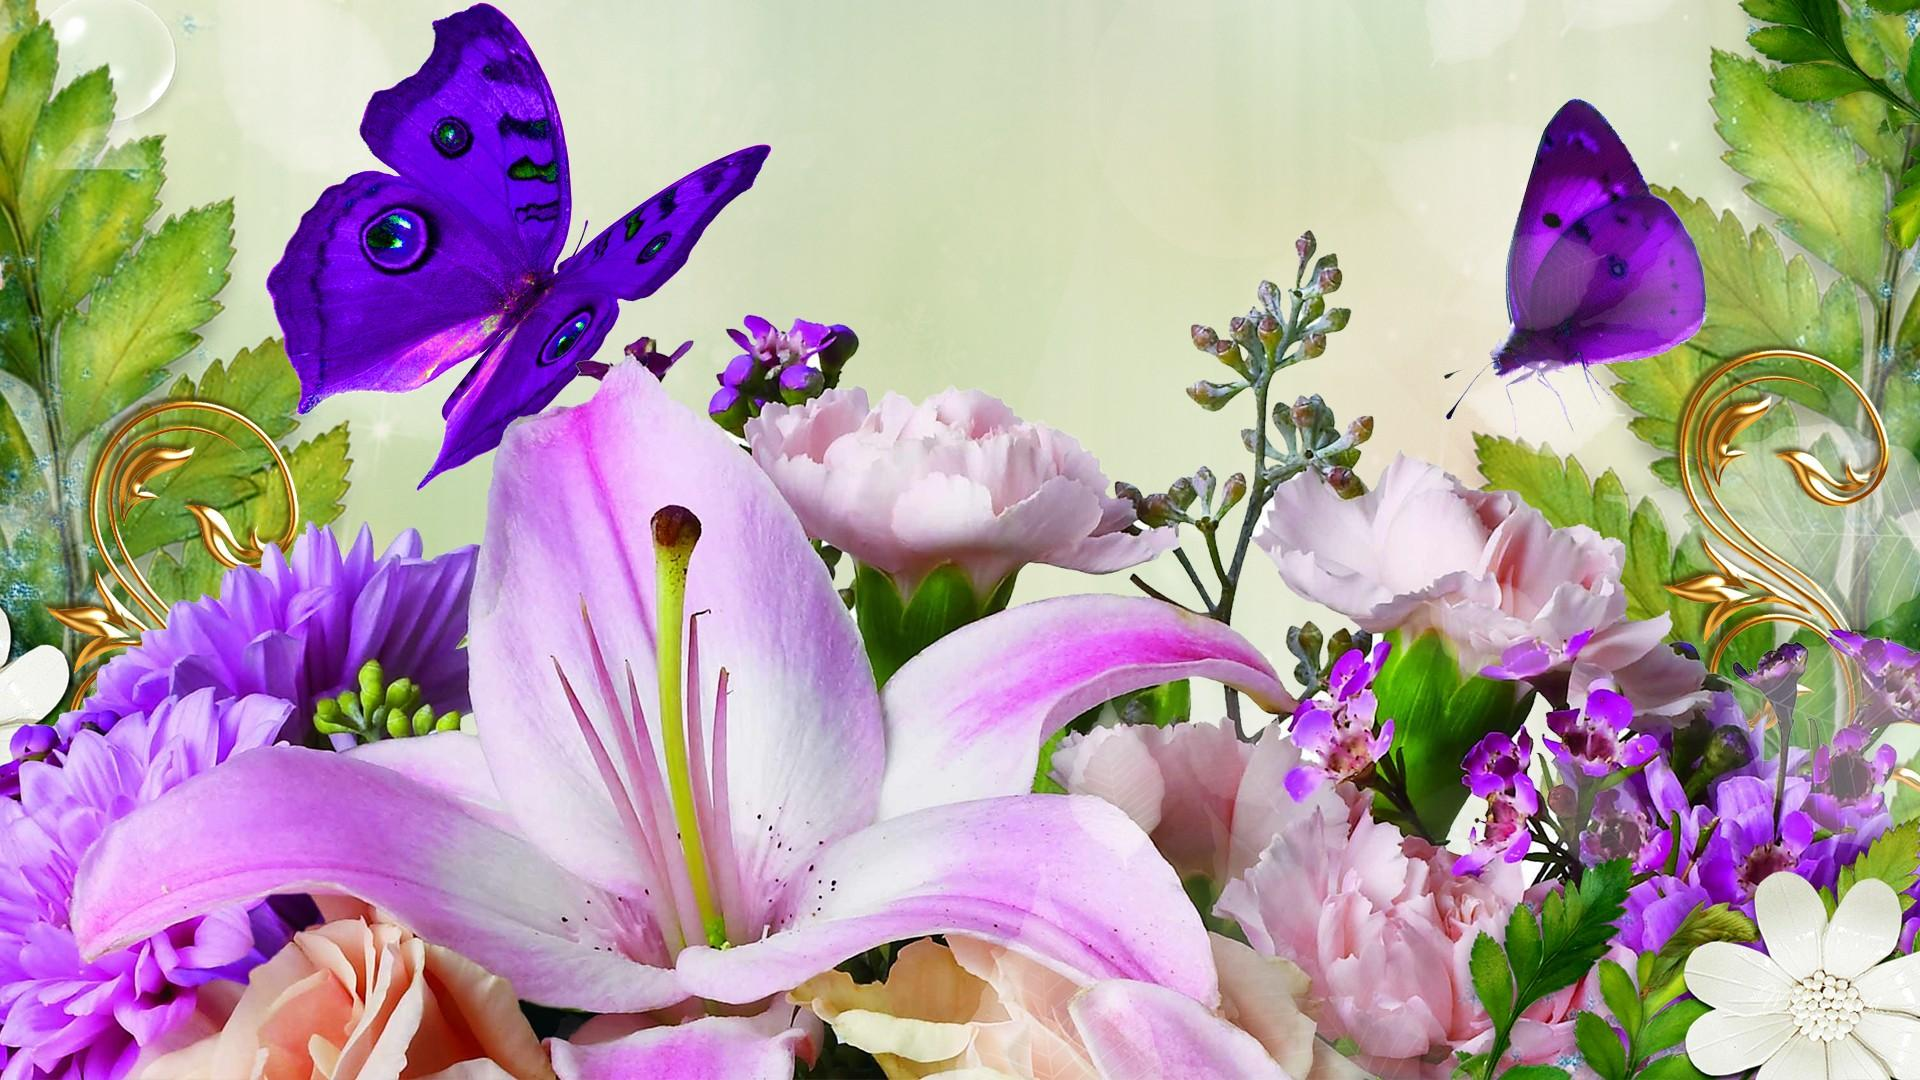 acecbbceaaacdbaeff-spring-flowers-flower-wallpaper-wp5001977